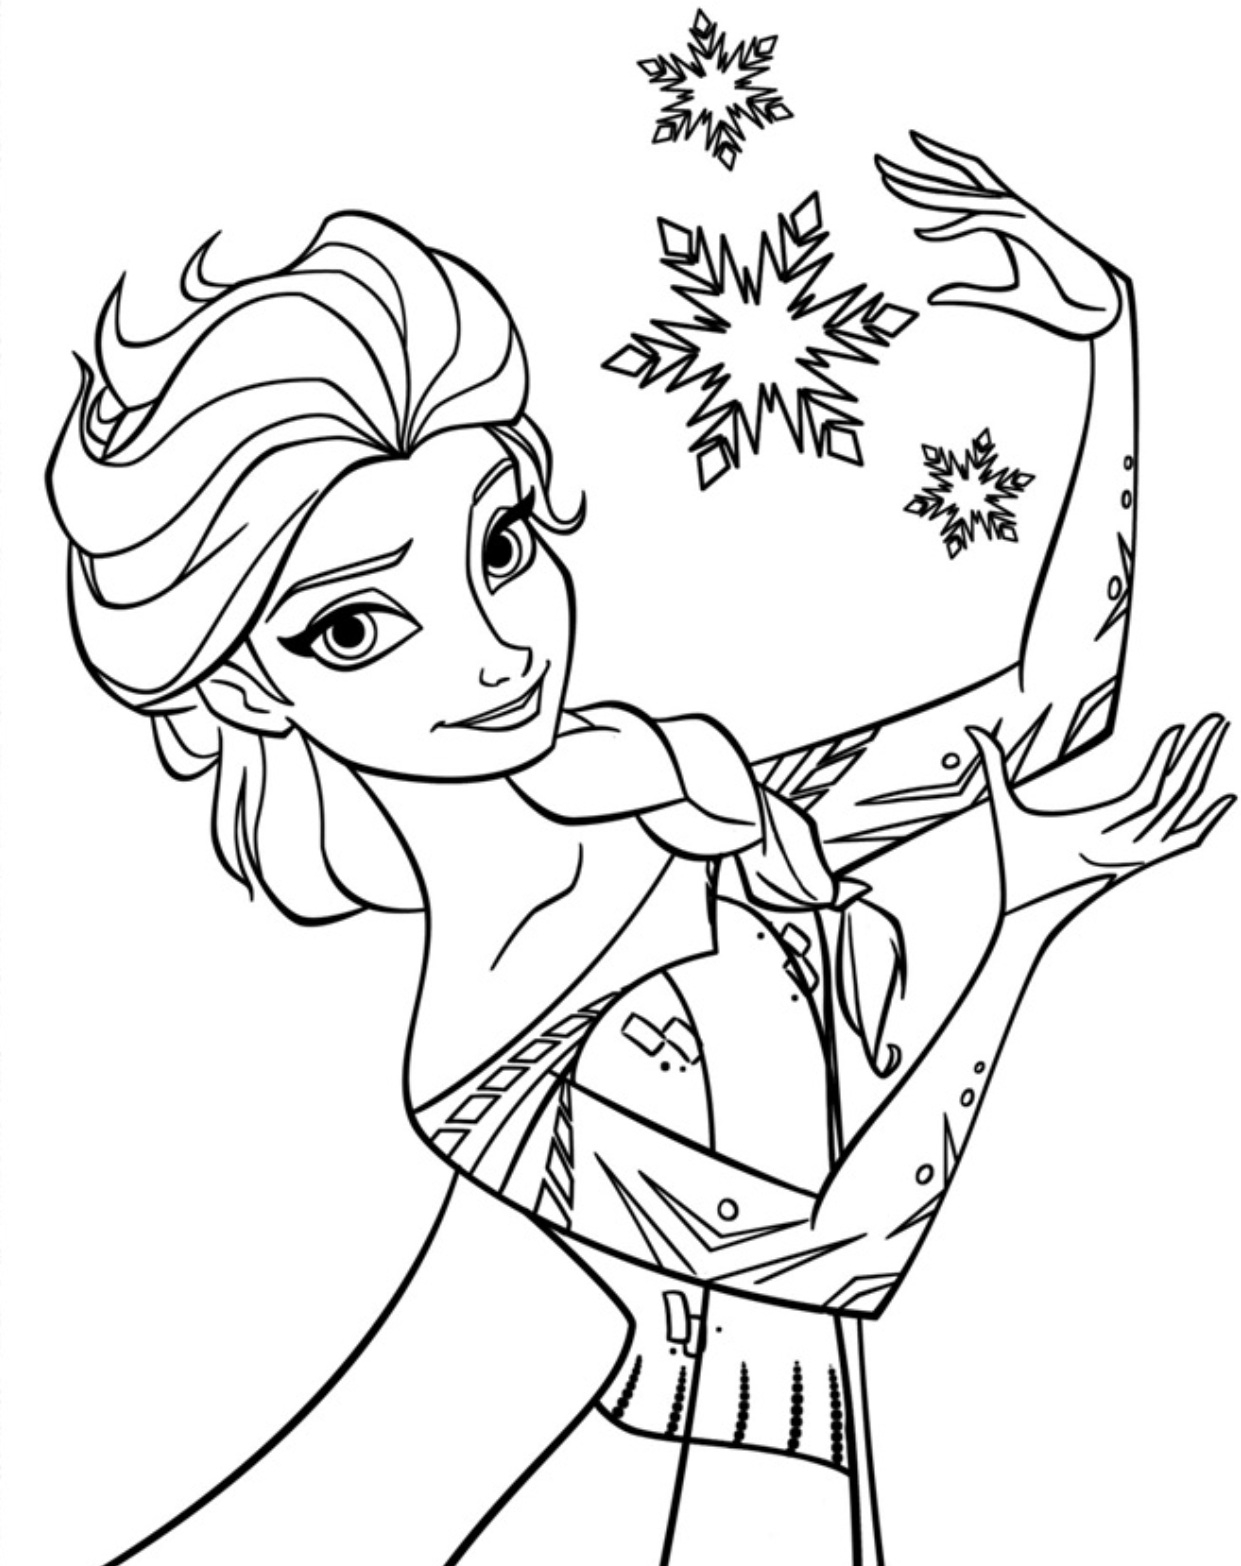 elsa printable coloring pages - q=big pictures of elsa